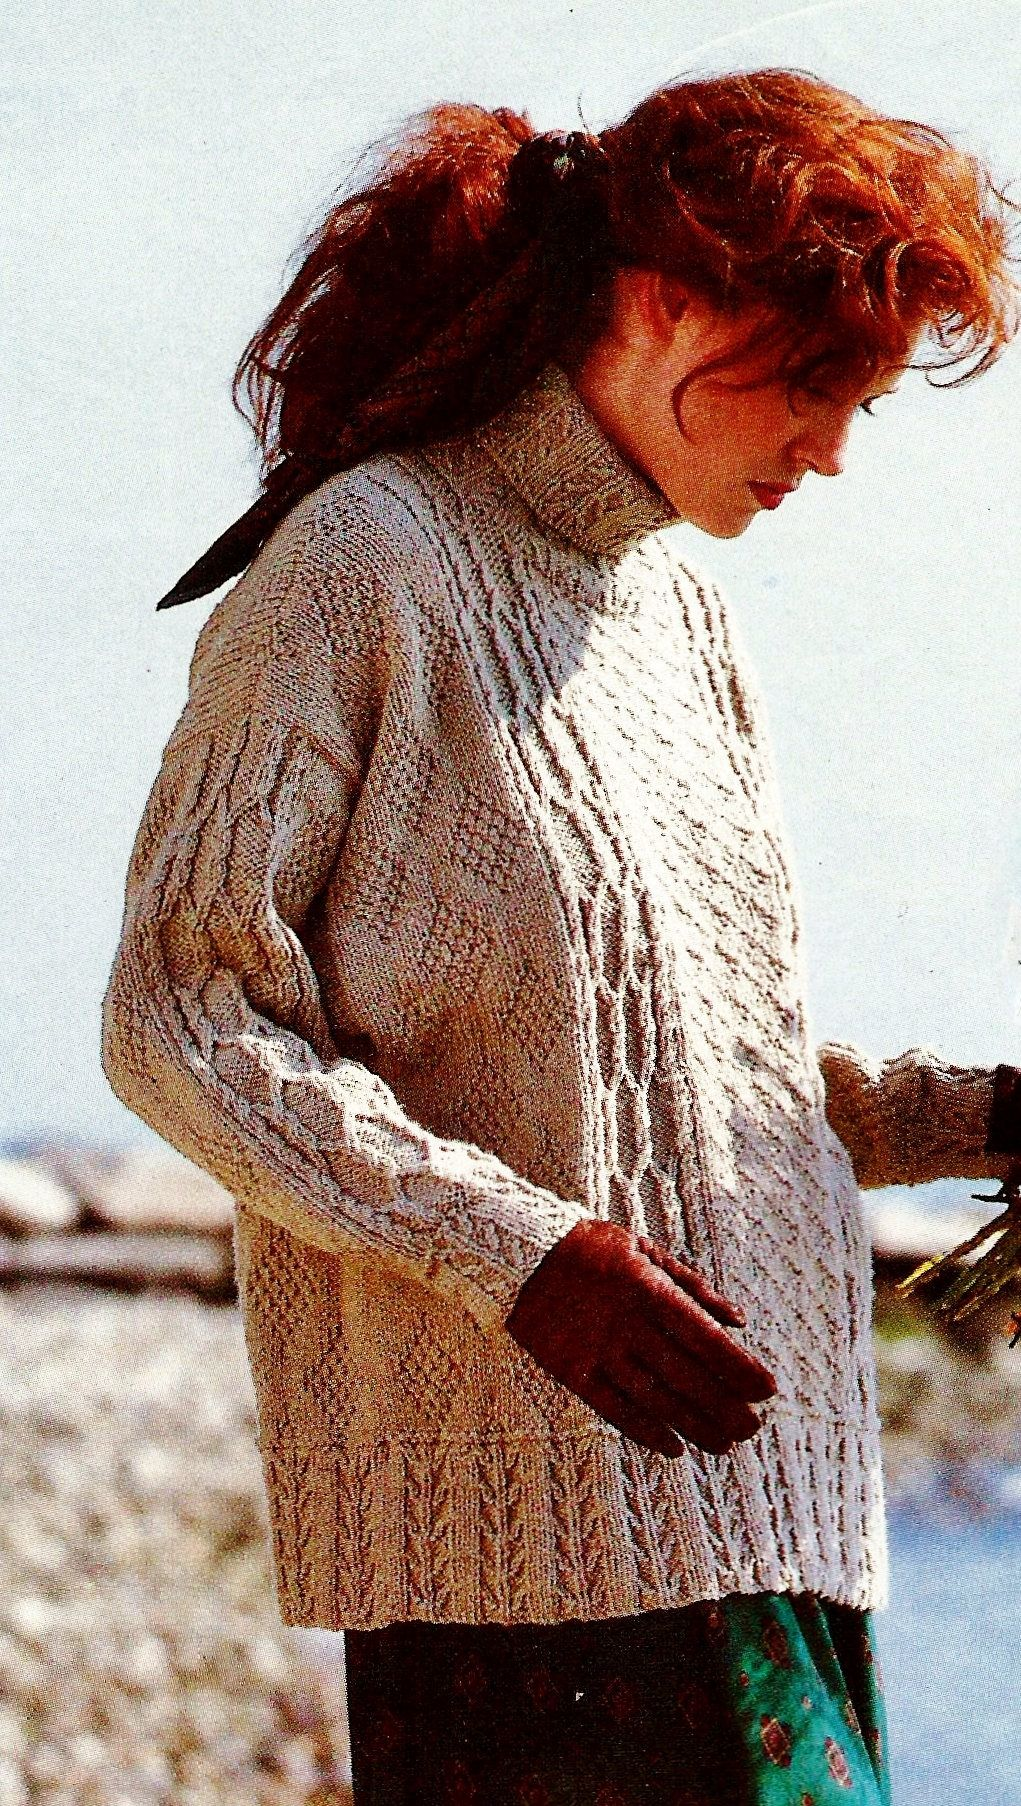 Seafarers guernsey sweater vintage knitting pattern download by seafarers guernsey sweater vintage knitting pattern download by momentsintwine on etsy bankloansurffo Choice Image